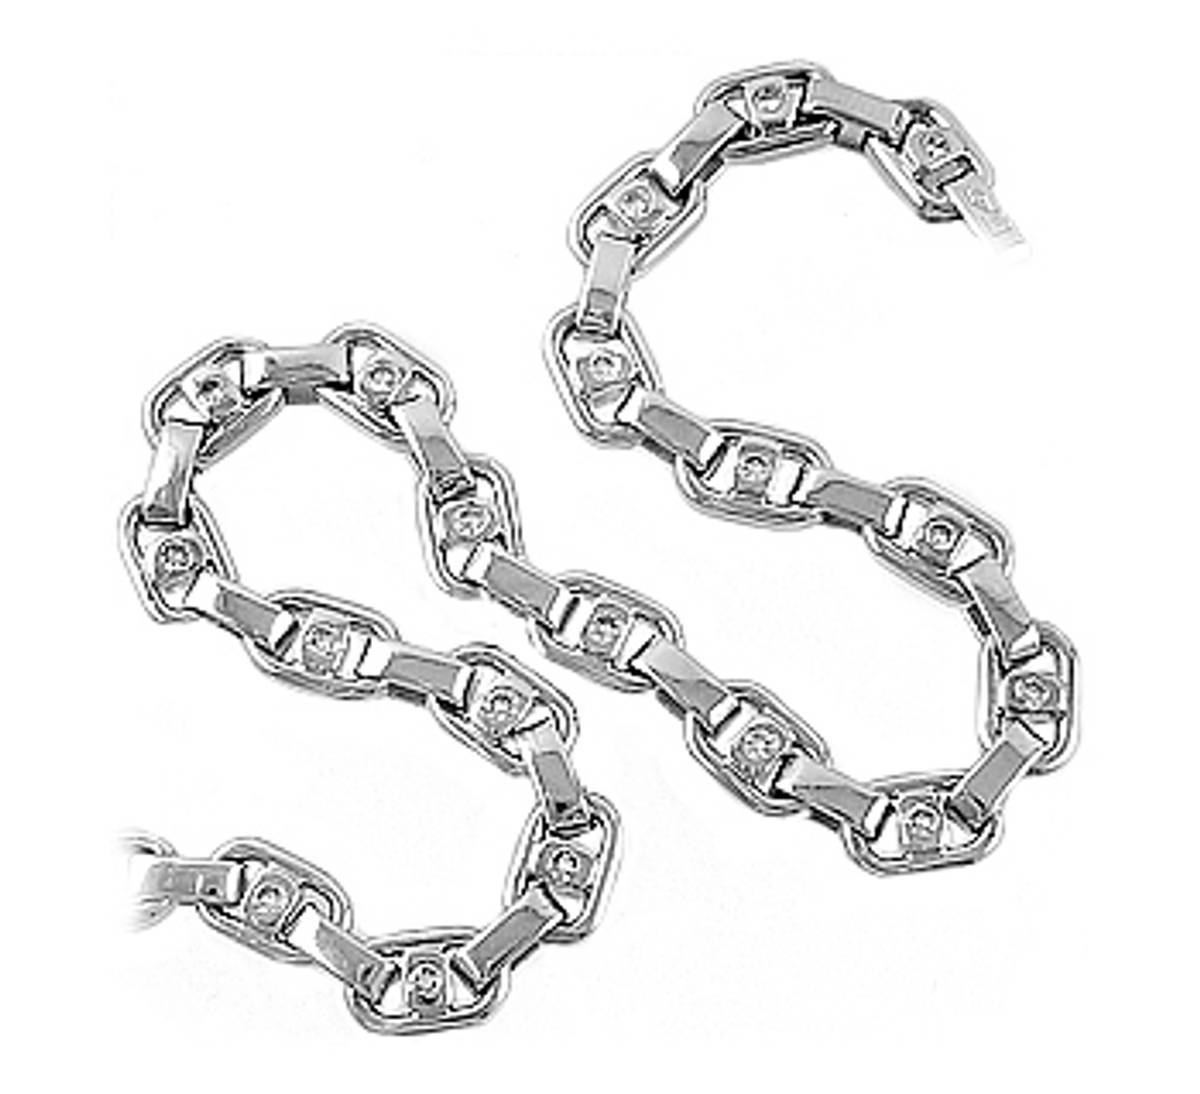 18 carat white gold bracelet with 0.40cts diamonds